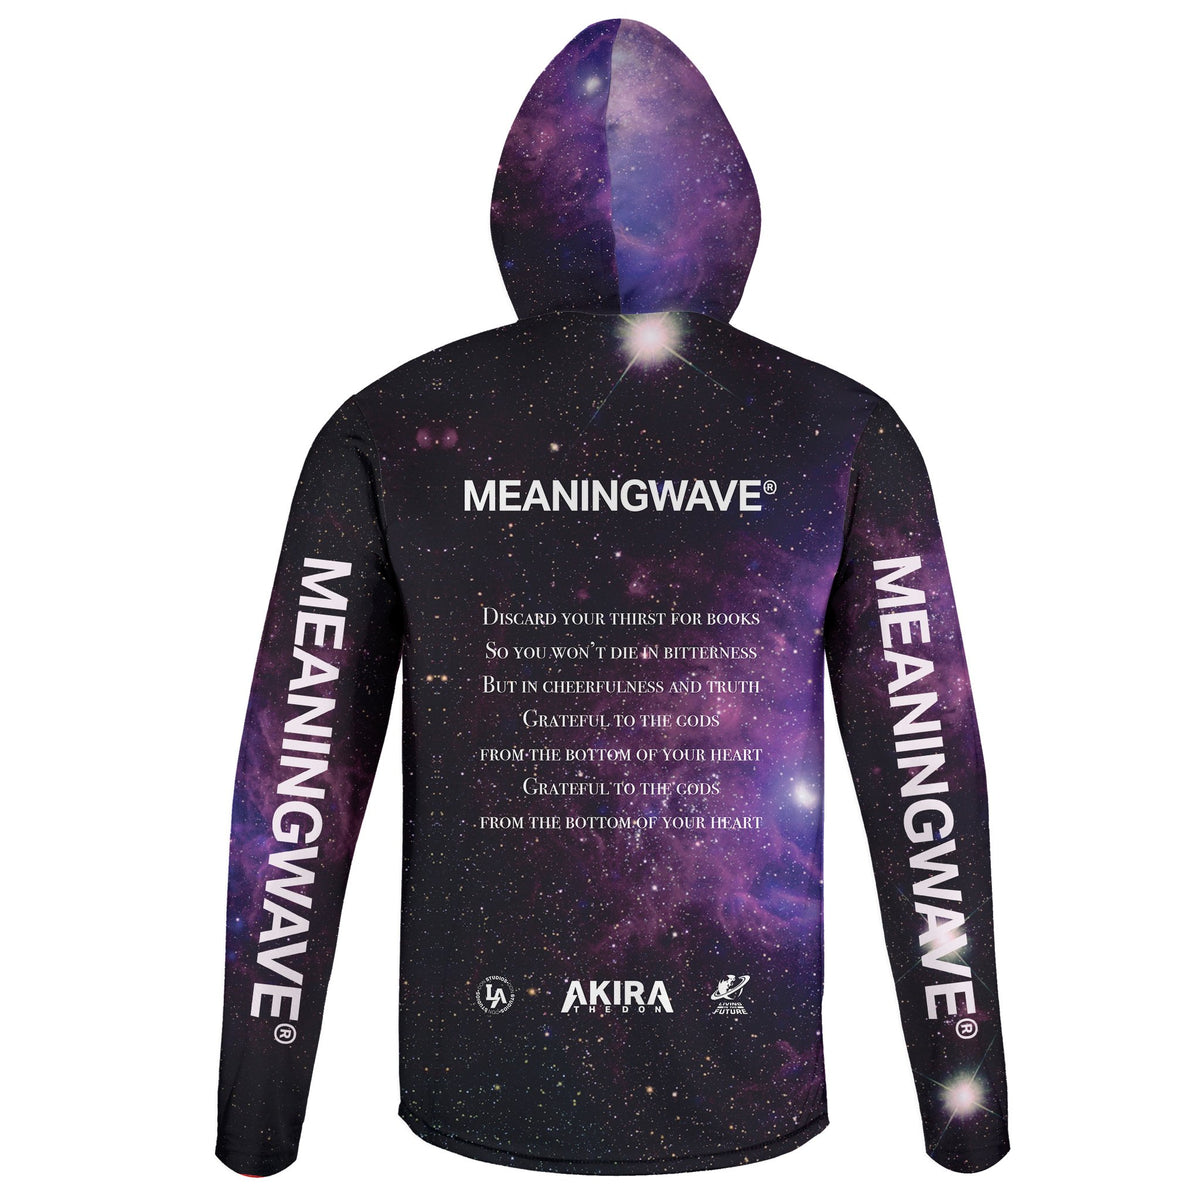 AKIRA THE DON & MARCUS AURELIUS - GRATEFUL TO THE GODS Lightweight Hoodie | meaningwave.com